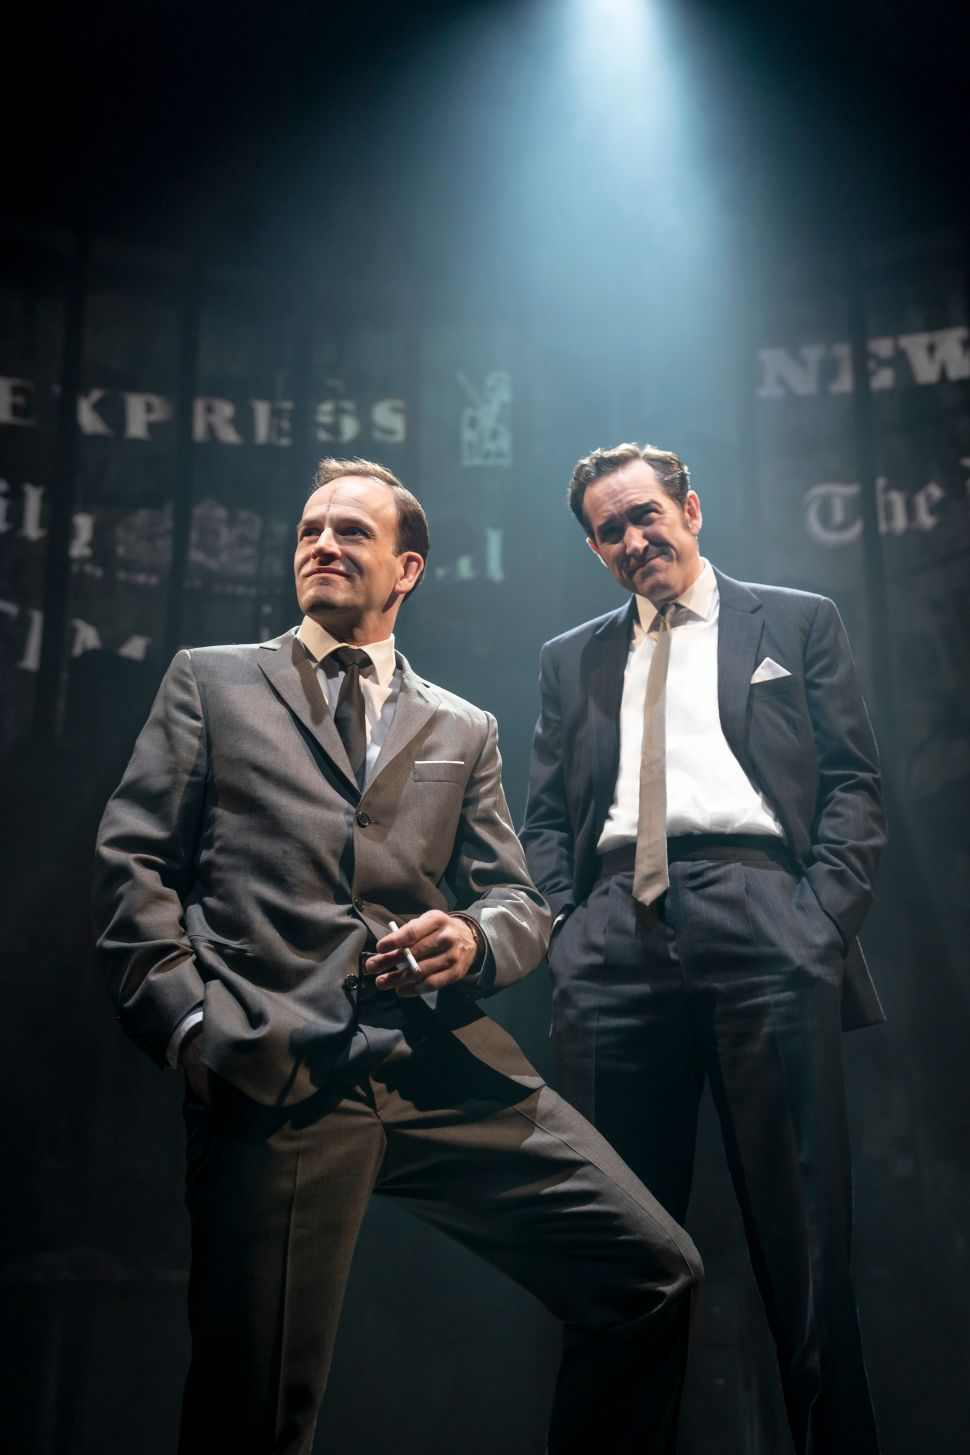 'Ink' Sketches a Shadowy Portrait of Rupert Murdoch's Rise